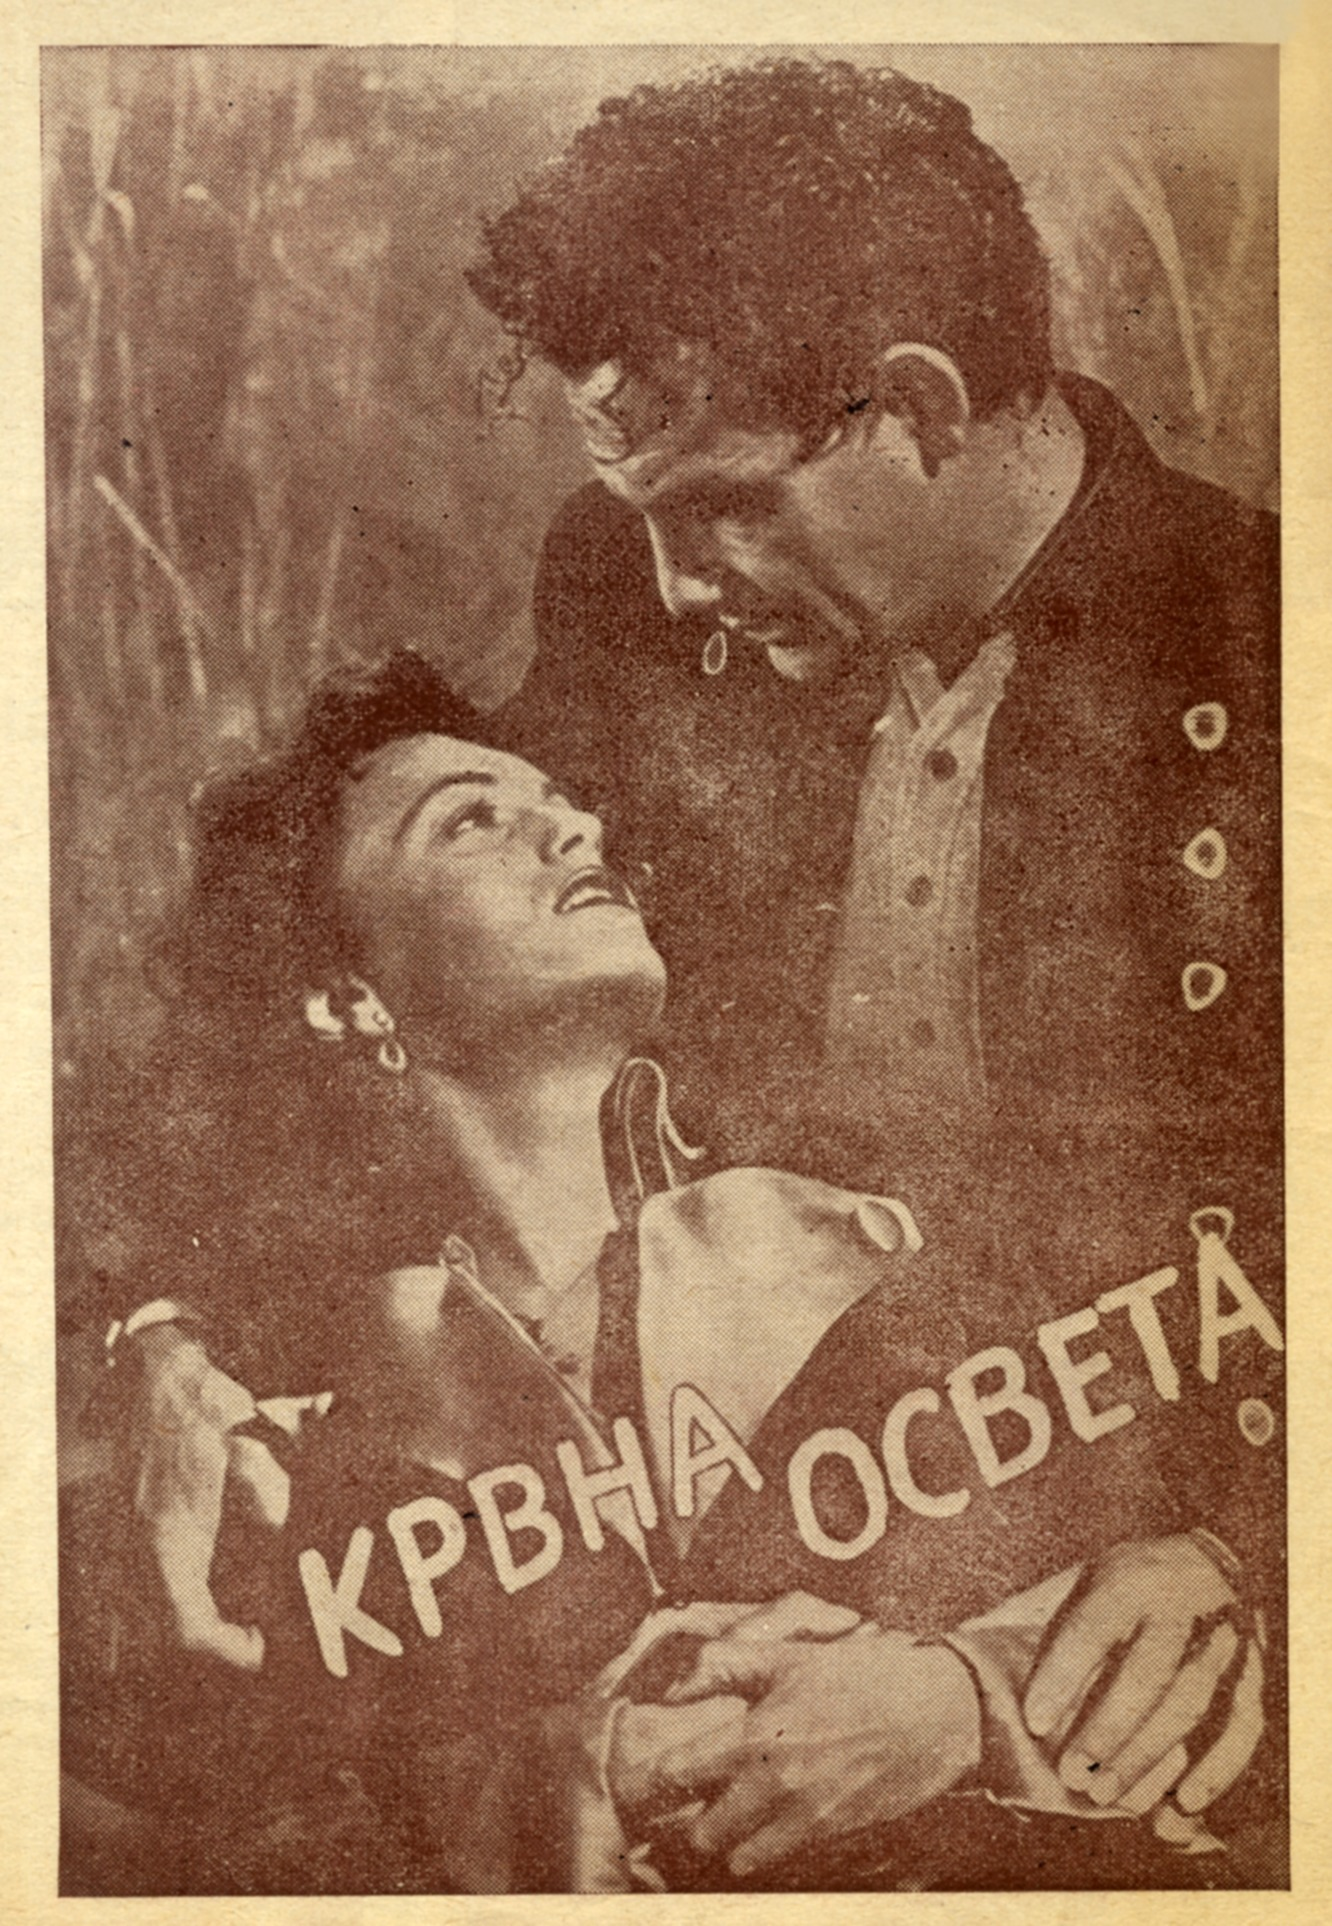 Advertisement for the feature film 'Vendetta', © Jugoslovenska kinoteka, Belgrade